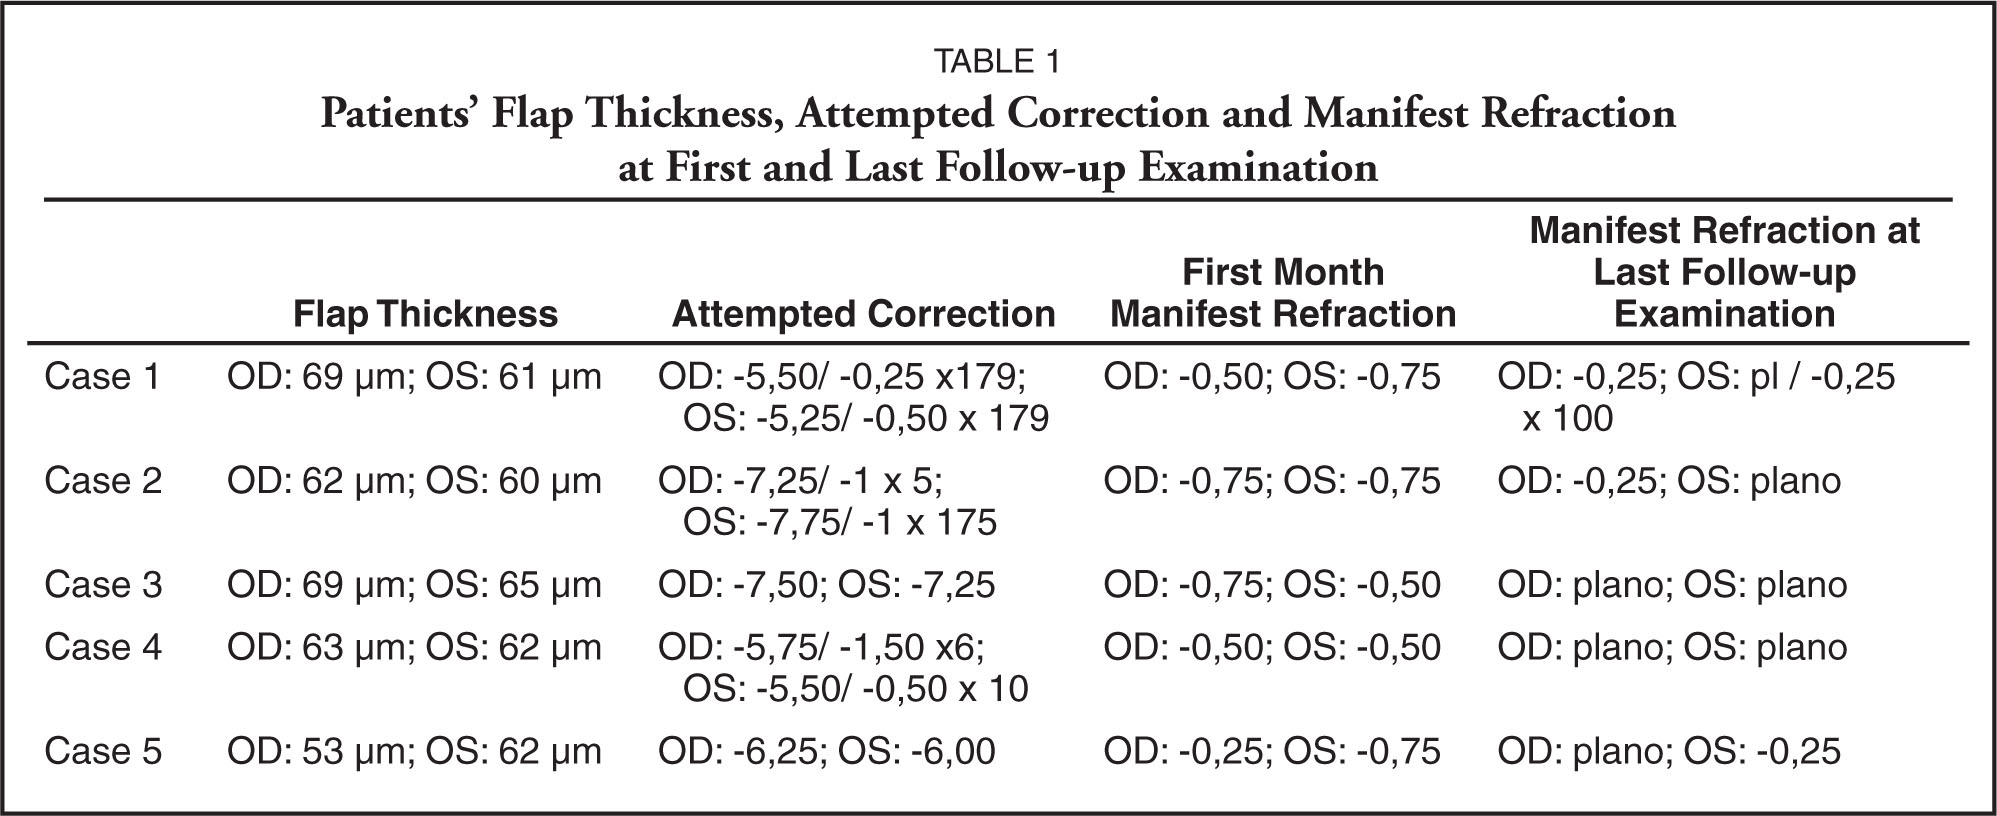 Patients' Flap Thickness, Attempted Correction and Manifest Refraction at First and Last Follow-Up Examination